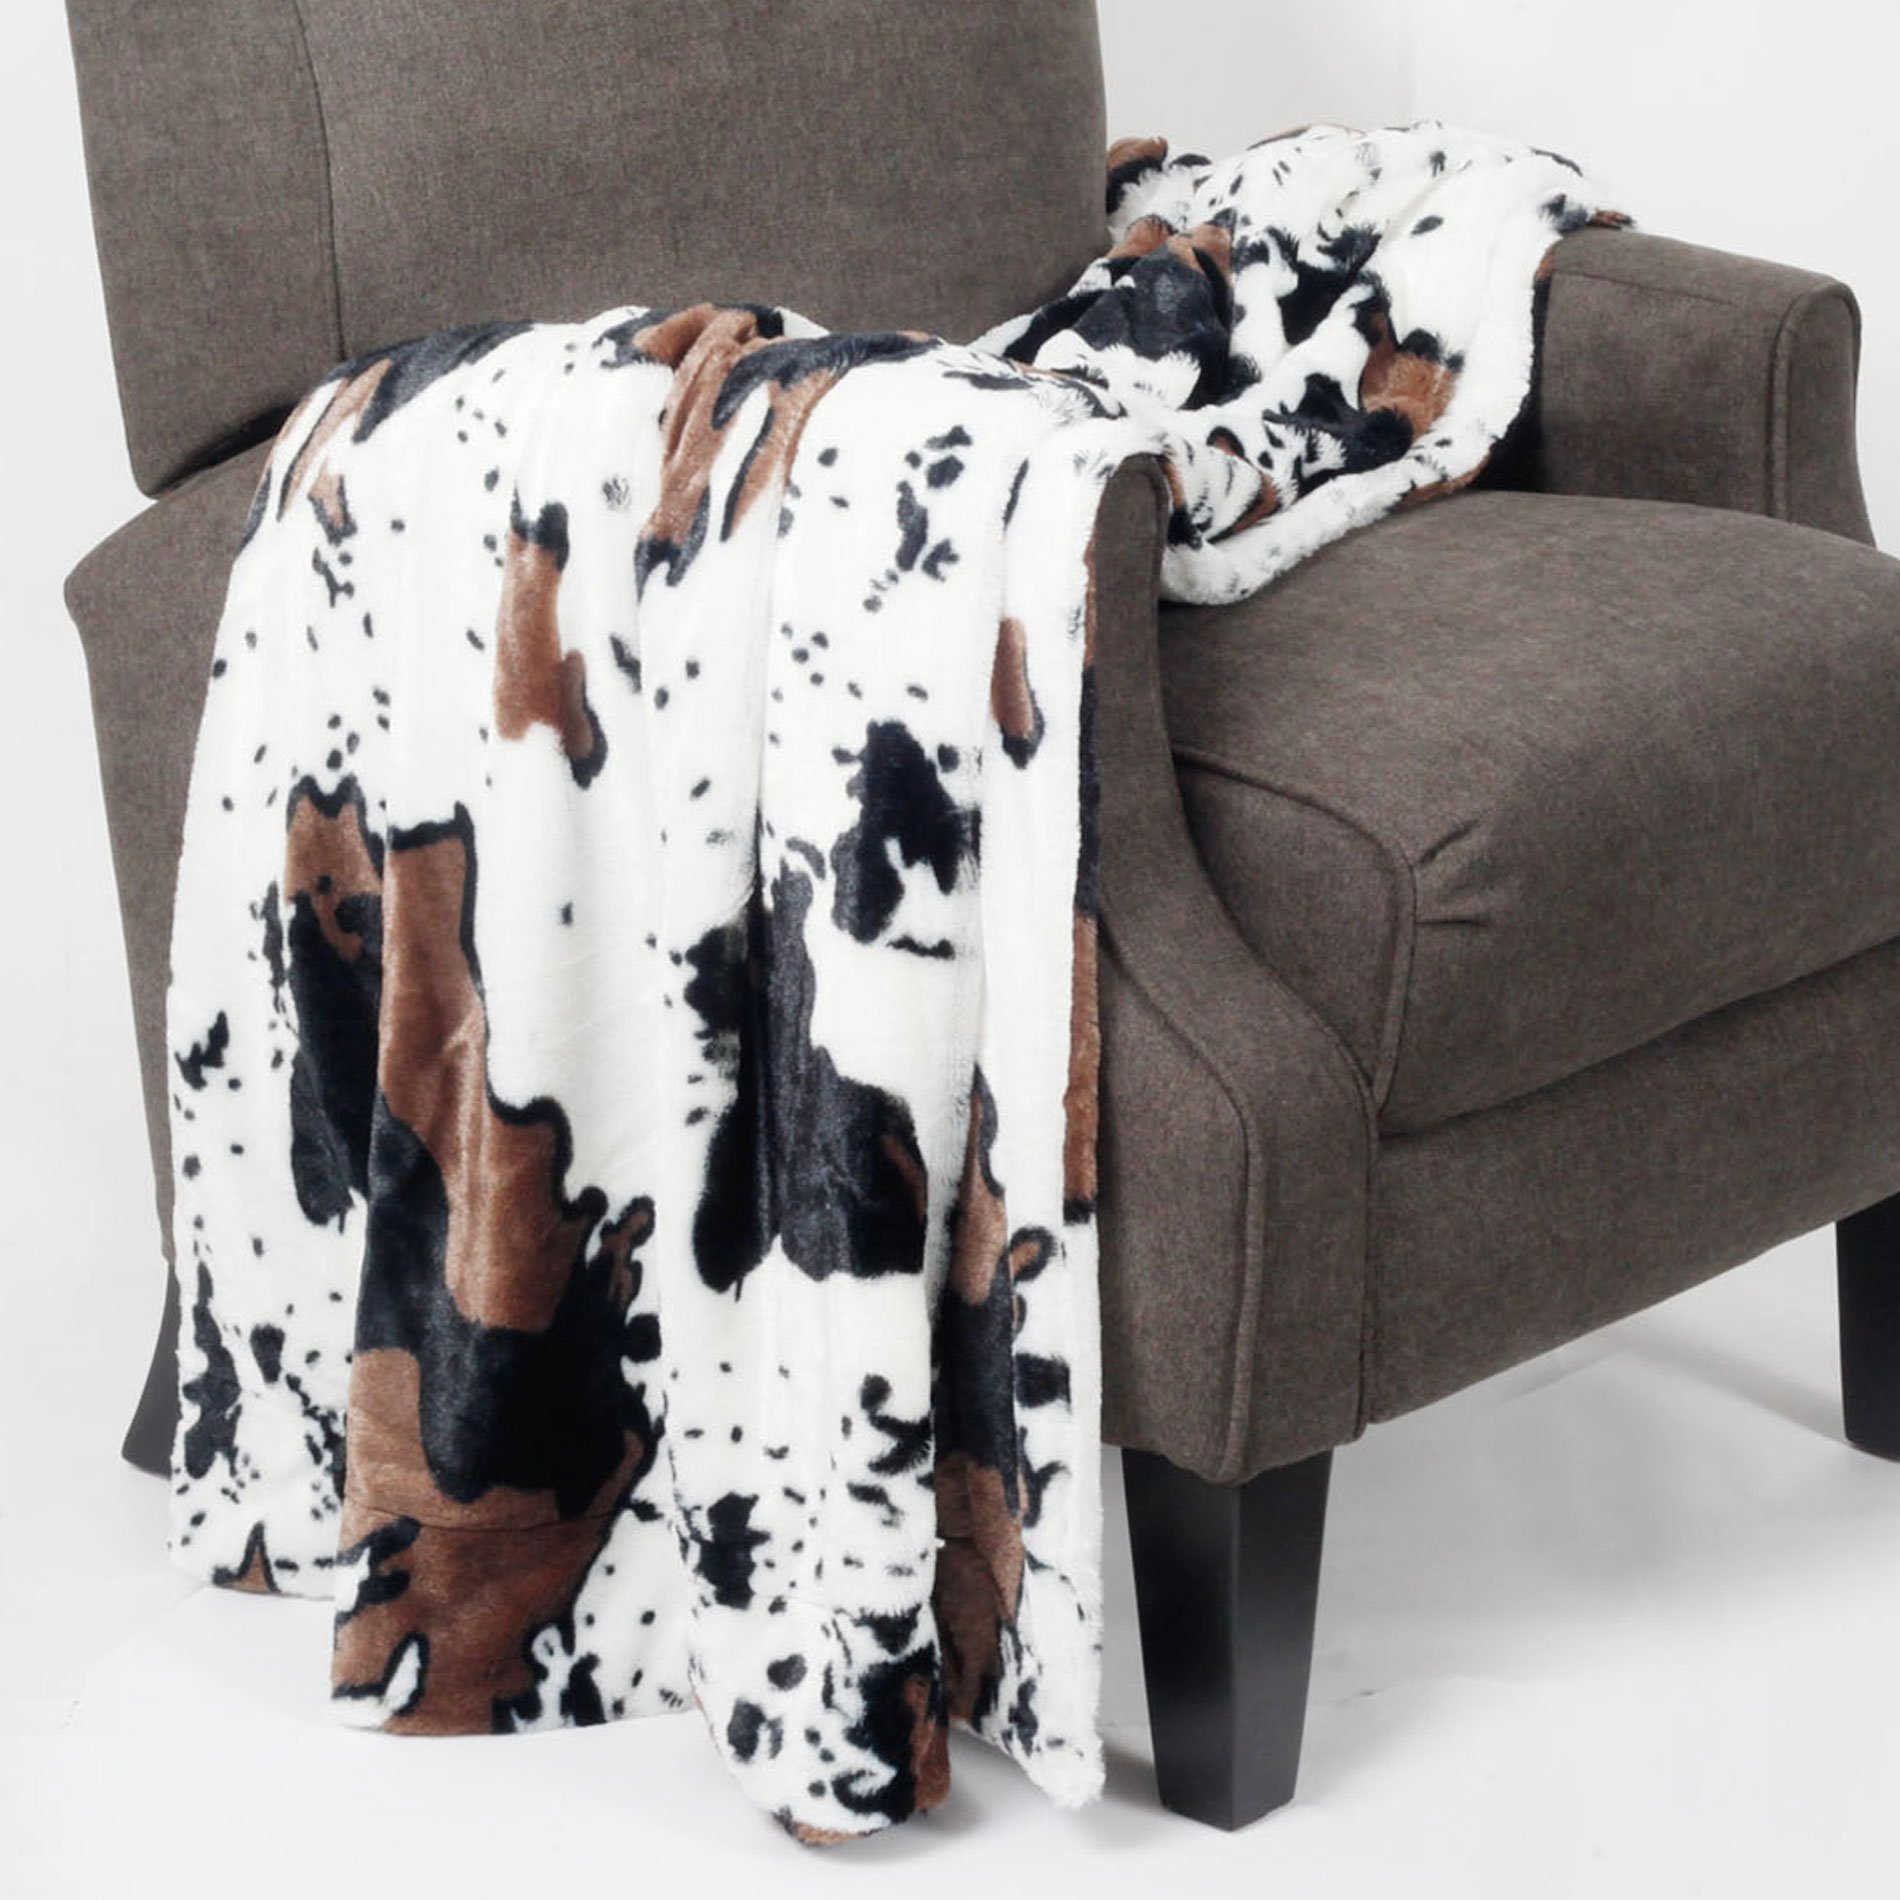 BNF Home BOON Animal Printed Double Sided Faux Fur Throw, 60'' x 80'', Cow